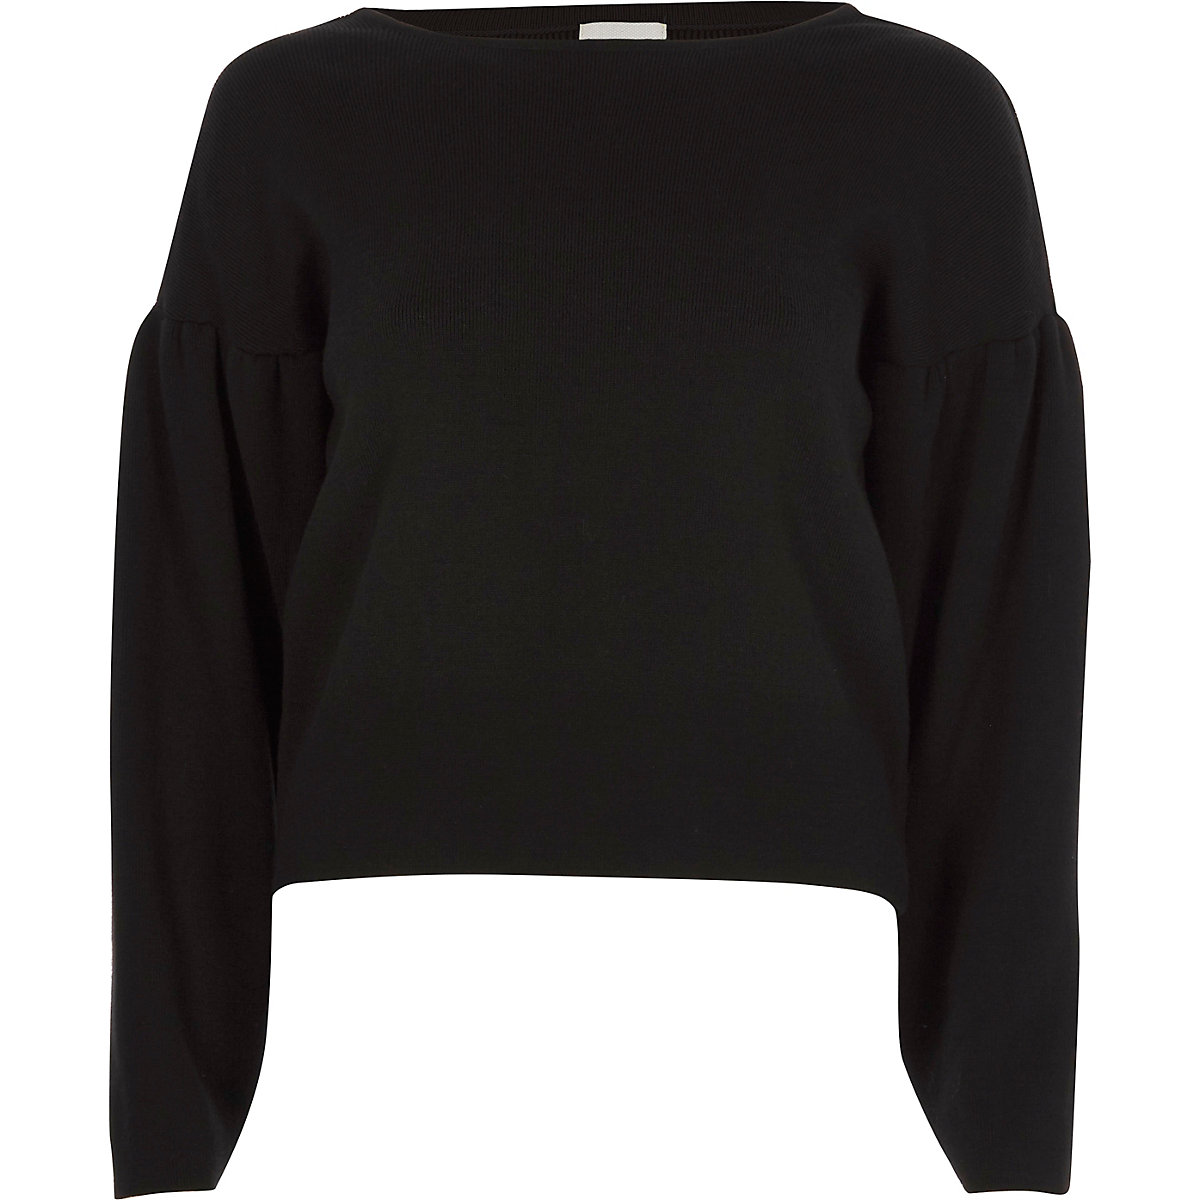 Black long puff sleeve lace-up back knit top